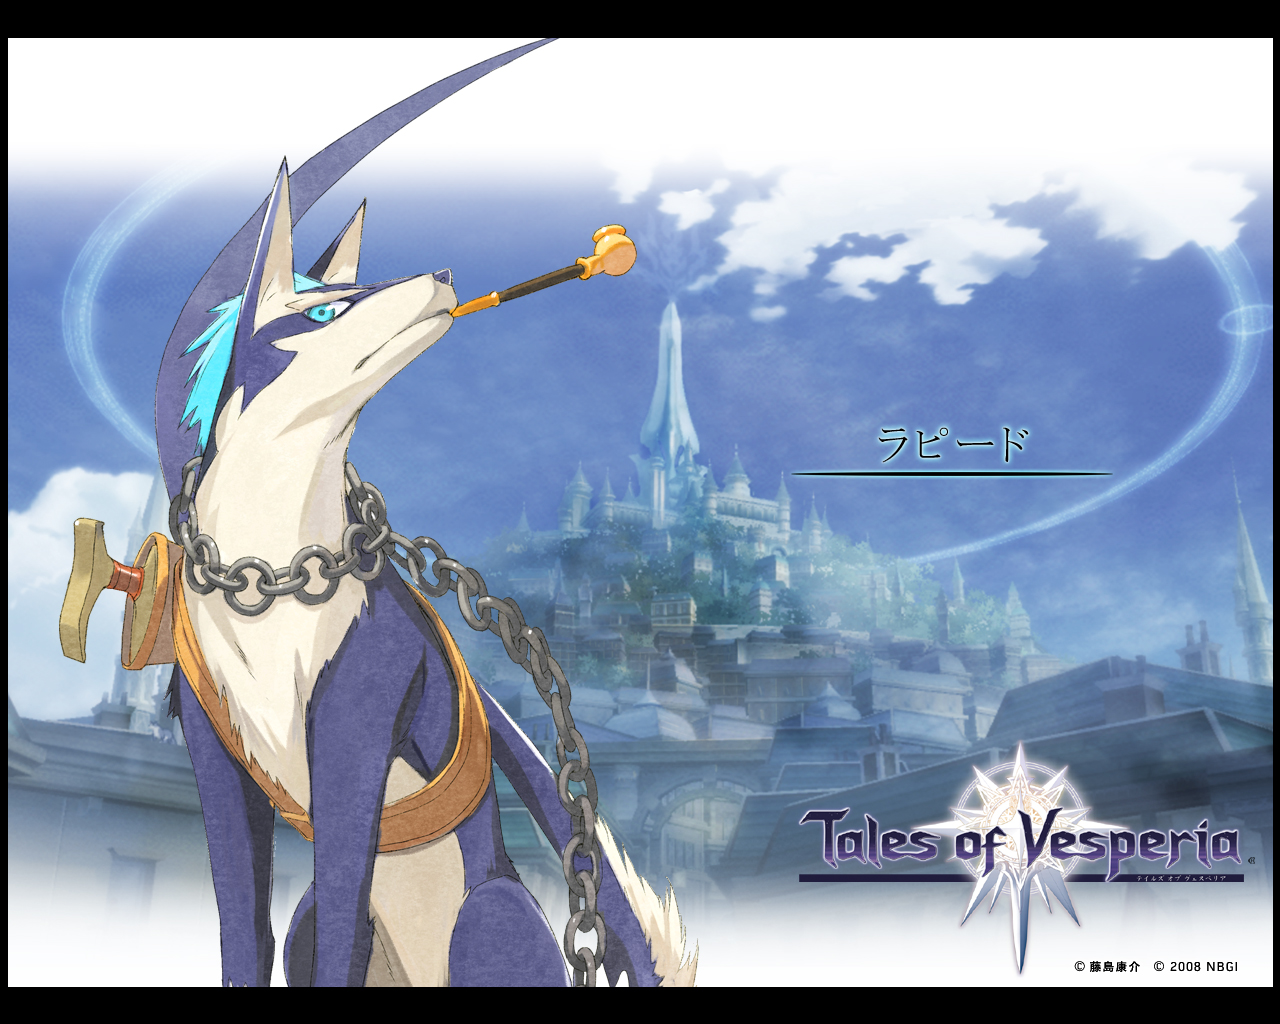 Tales of Vesperia Best Pictures 1280x1024